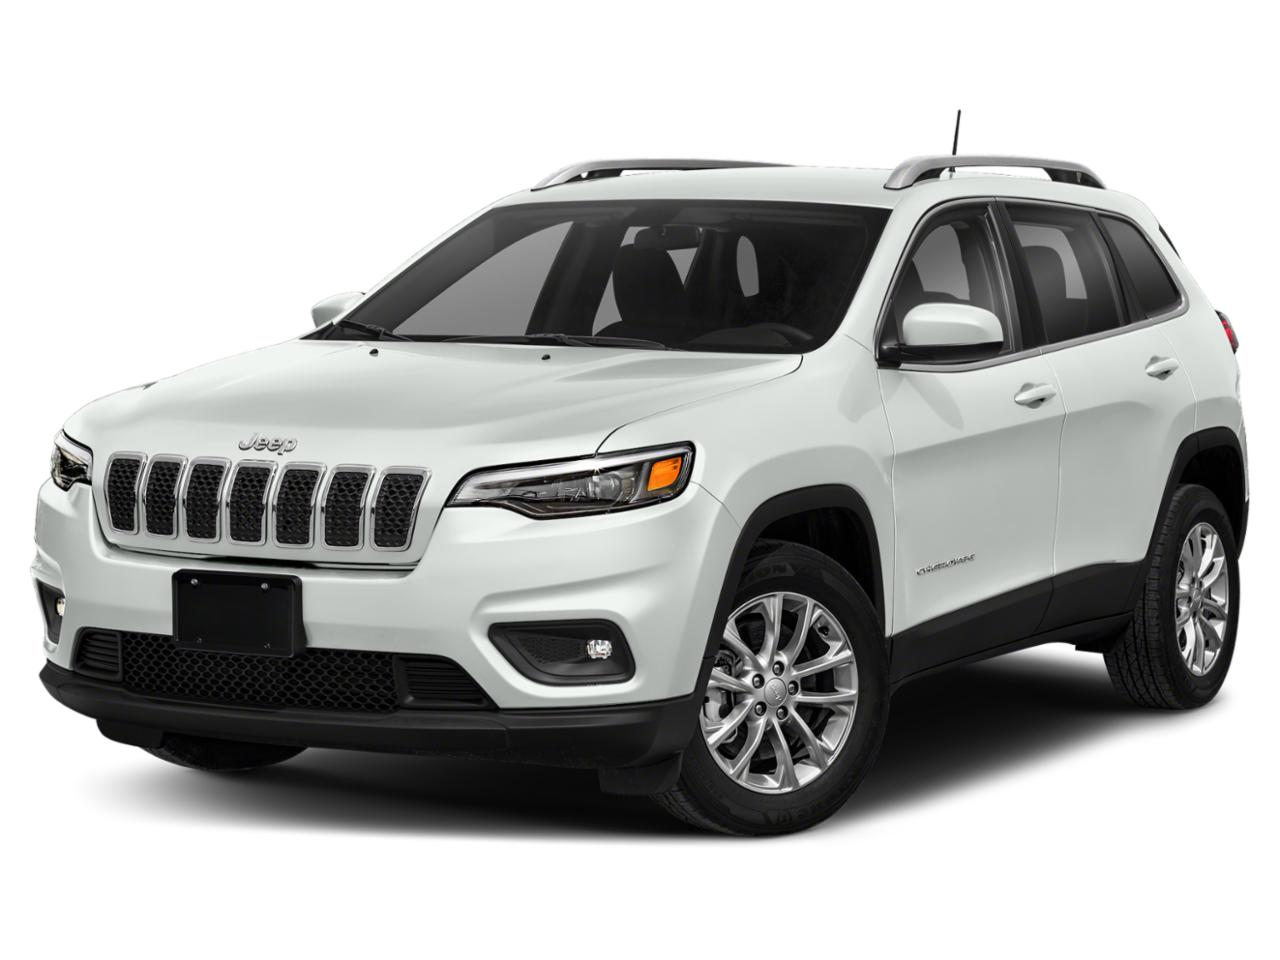 2019 Jeep Cherokee Vehicle Photo in Kingwood, TX 77339